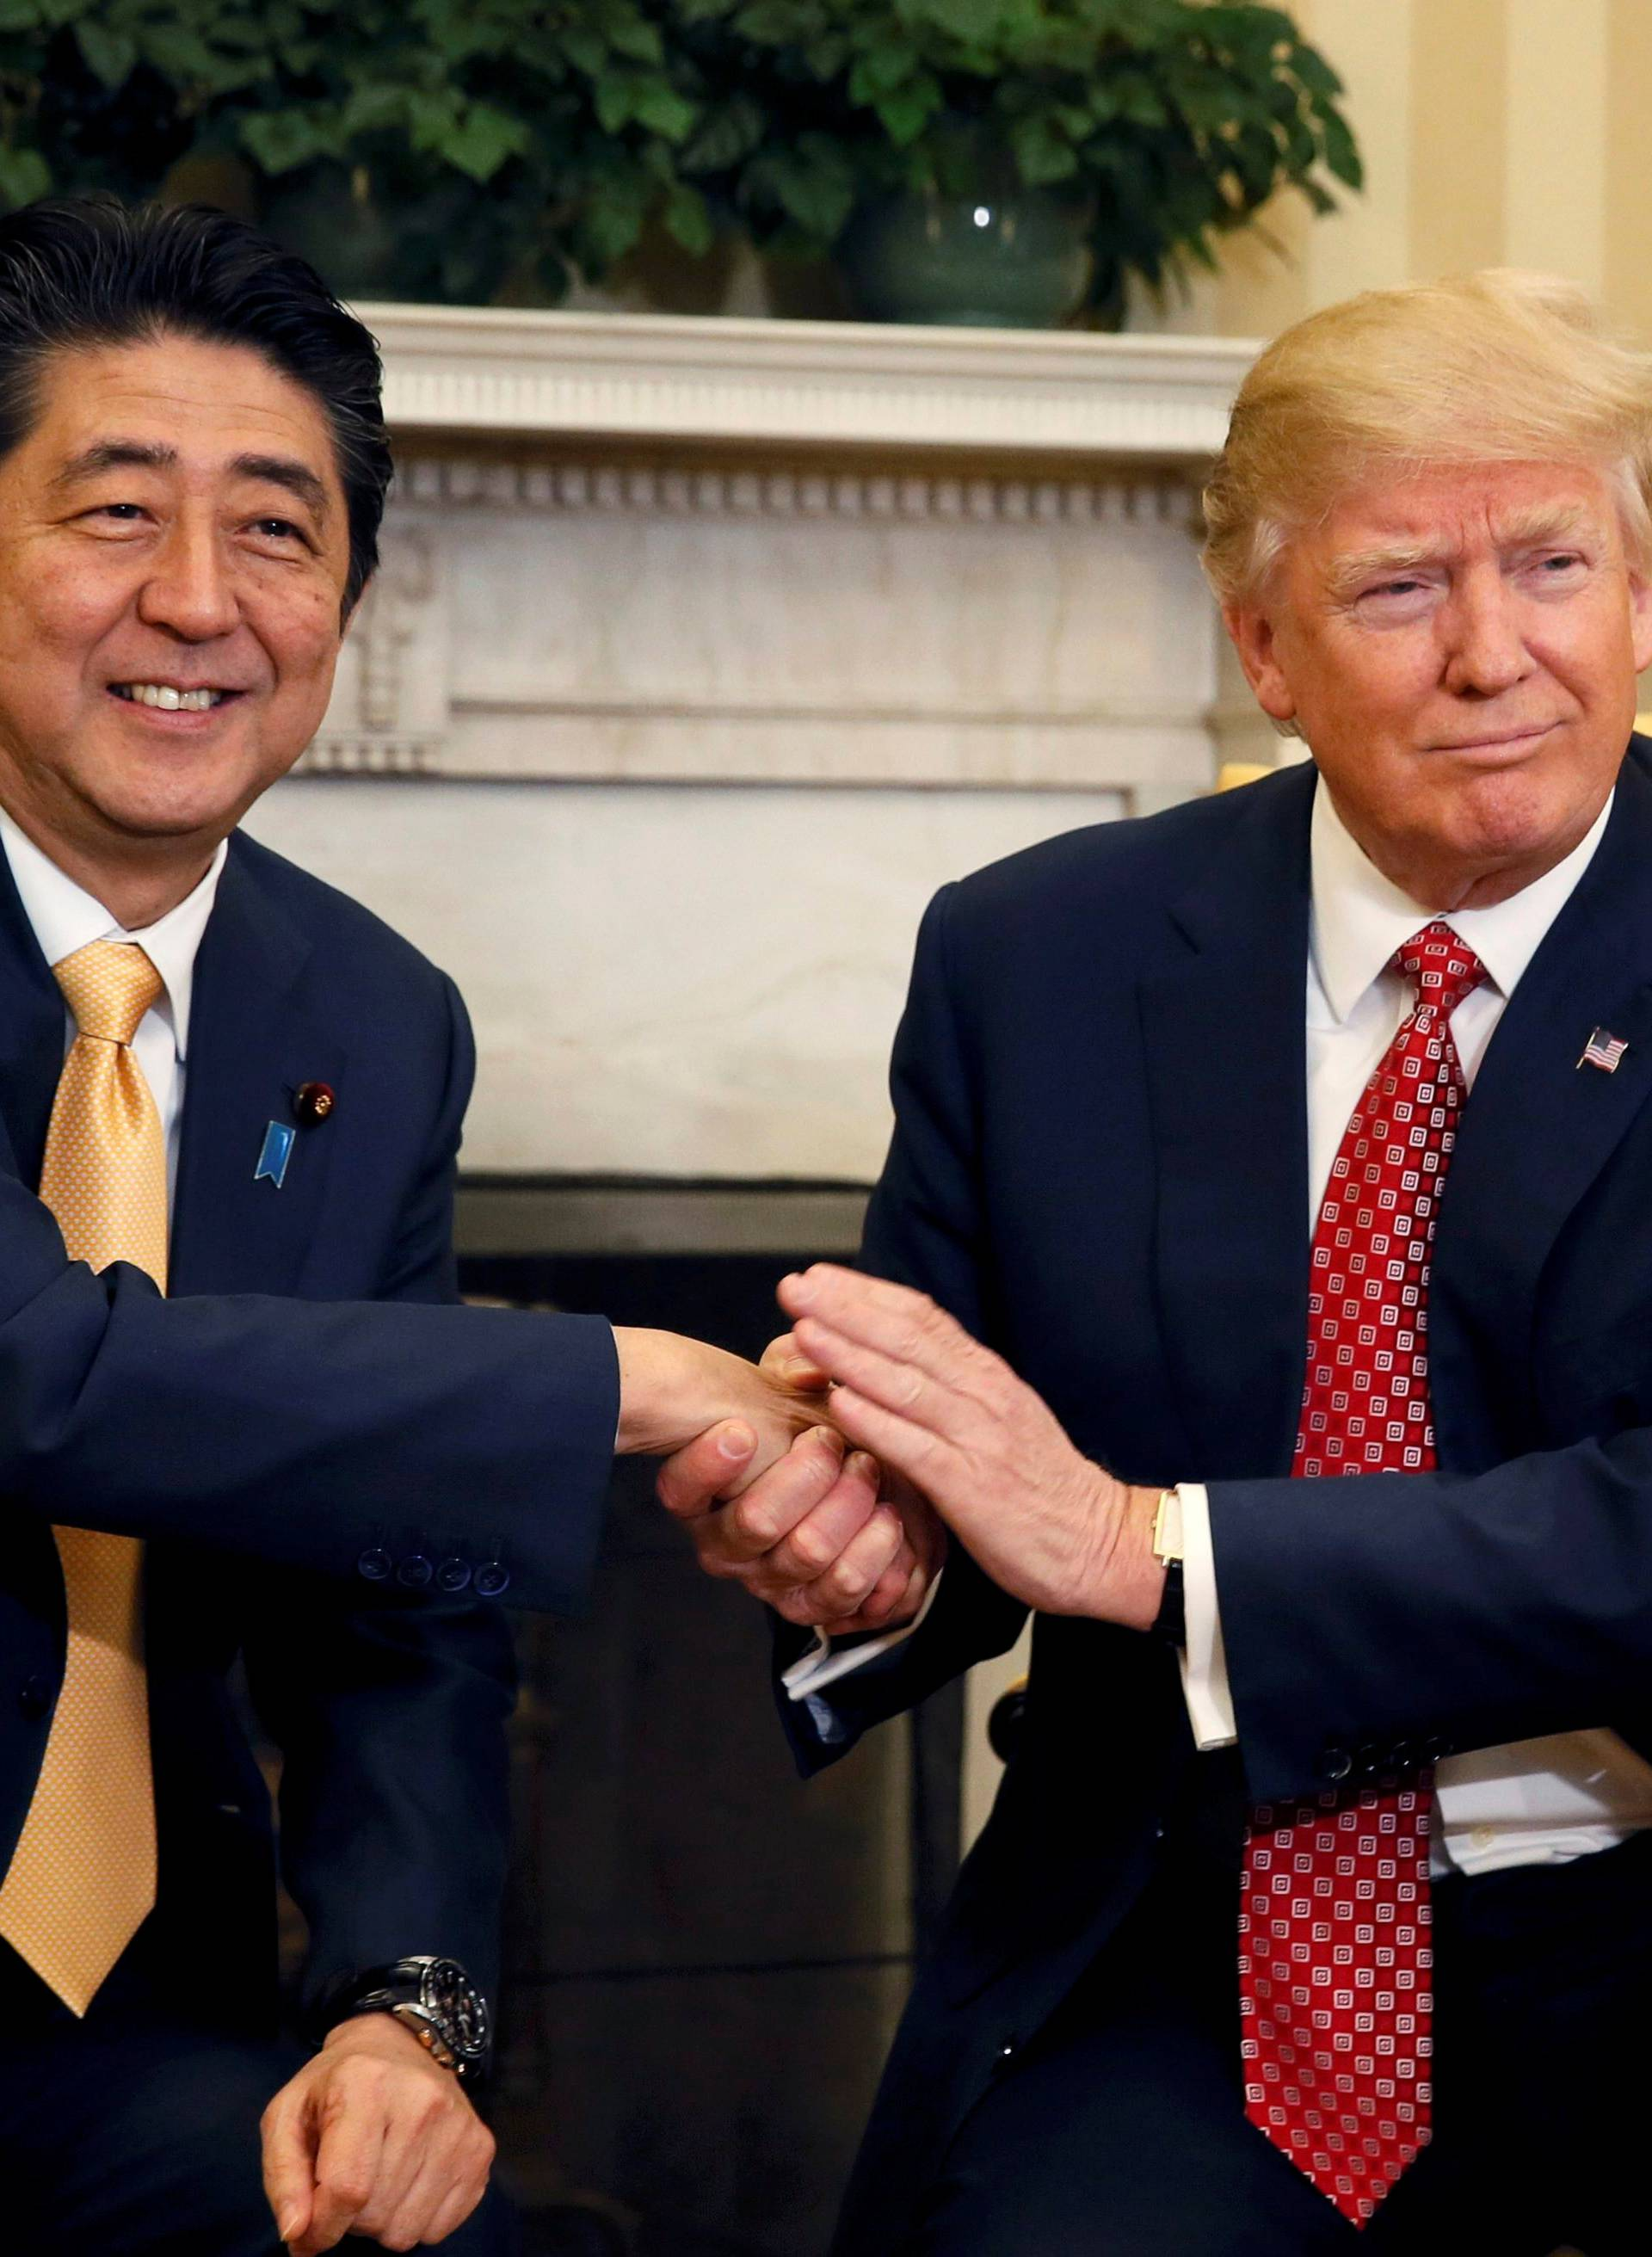 Japanese Prime Minister Abe shakes hands with U.S. President Trump during their meeting in the Oval Office at the White House in Washington